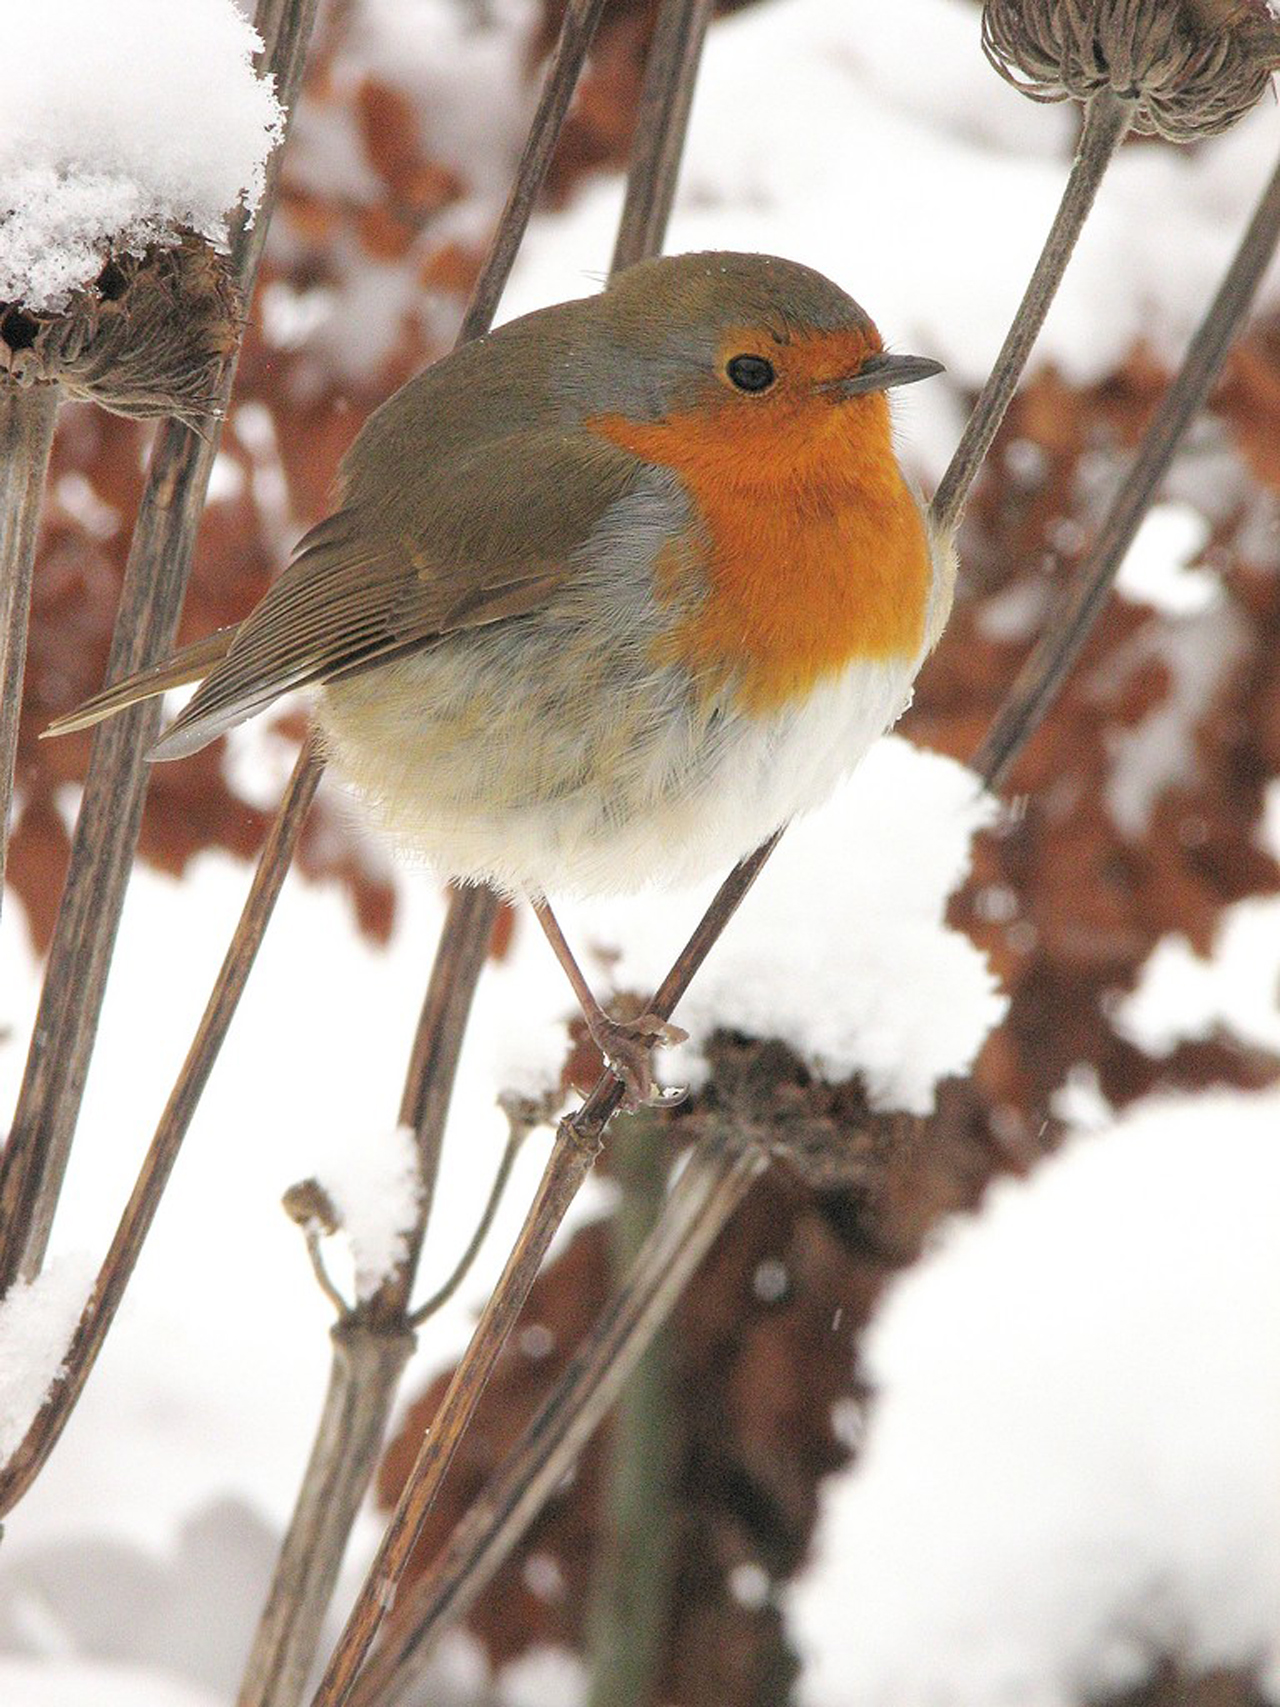 A robin on snowy seedheads. (RHS/Paul Cumbleton/PA)